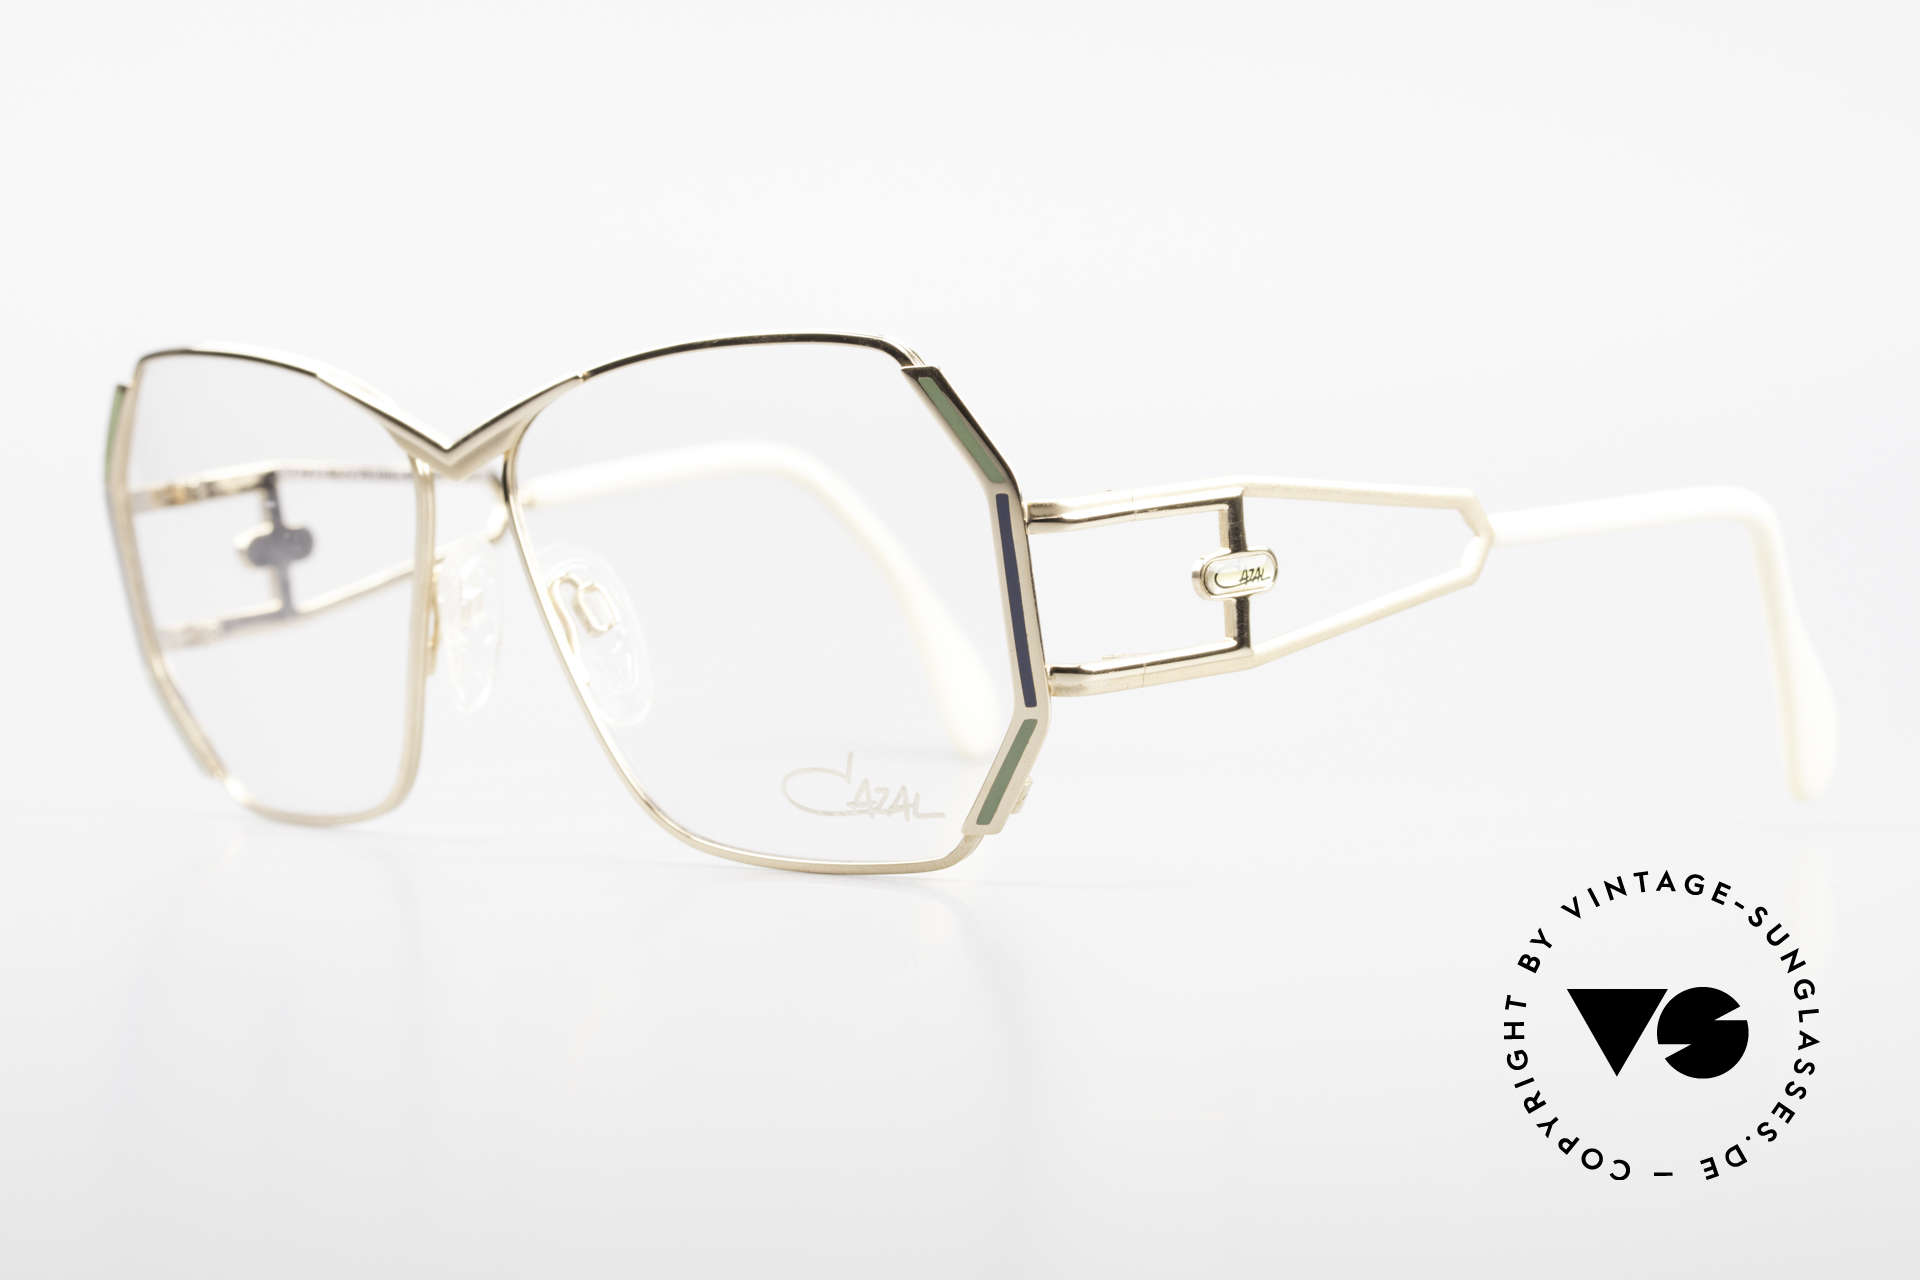 Cazal 225 Old School HipHop Frame 80's, great frame design by Cari Zalloni with fancy temples, Made for Women